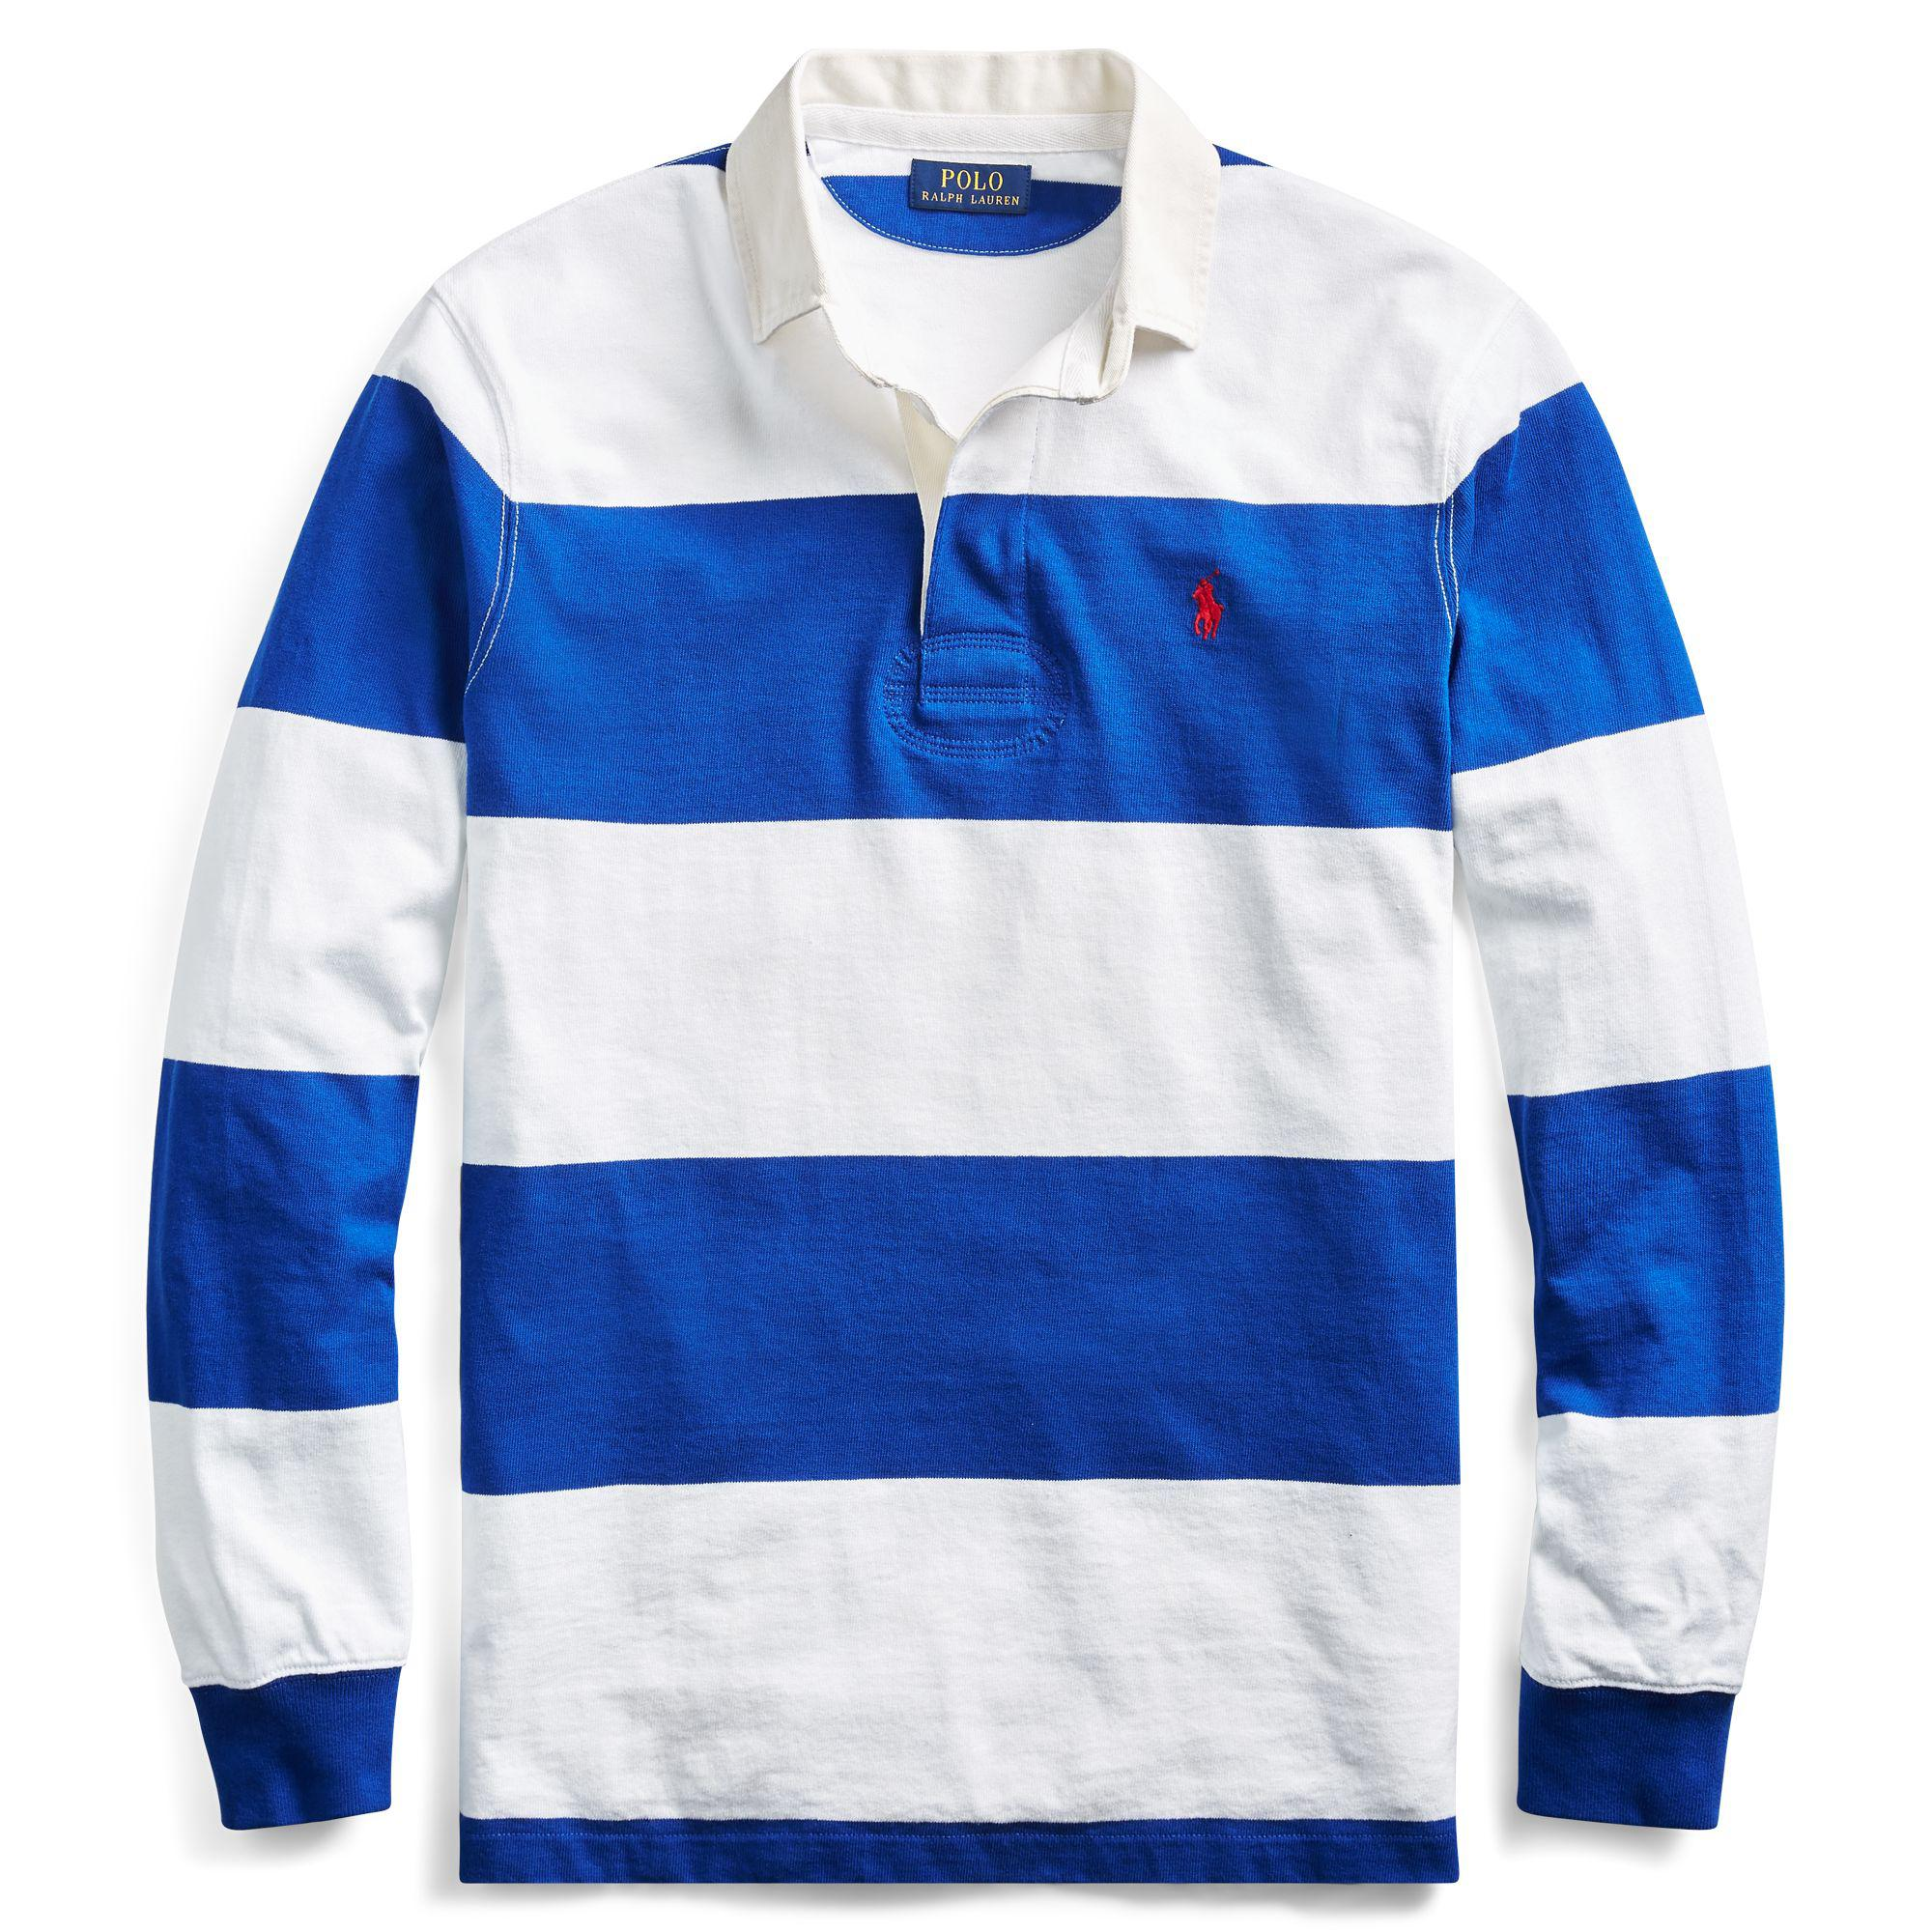 3daa748a0 Polo Ralph Lauren - Blue The Iconic Rugby Shirt for Men - Lyst. View  fullscreen